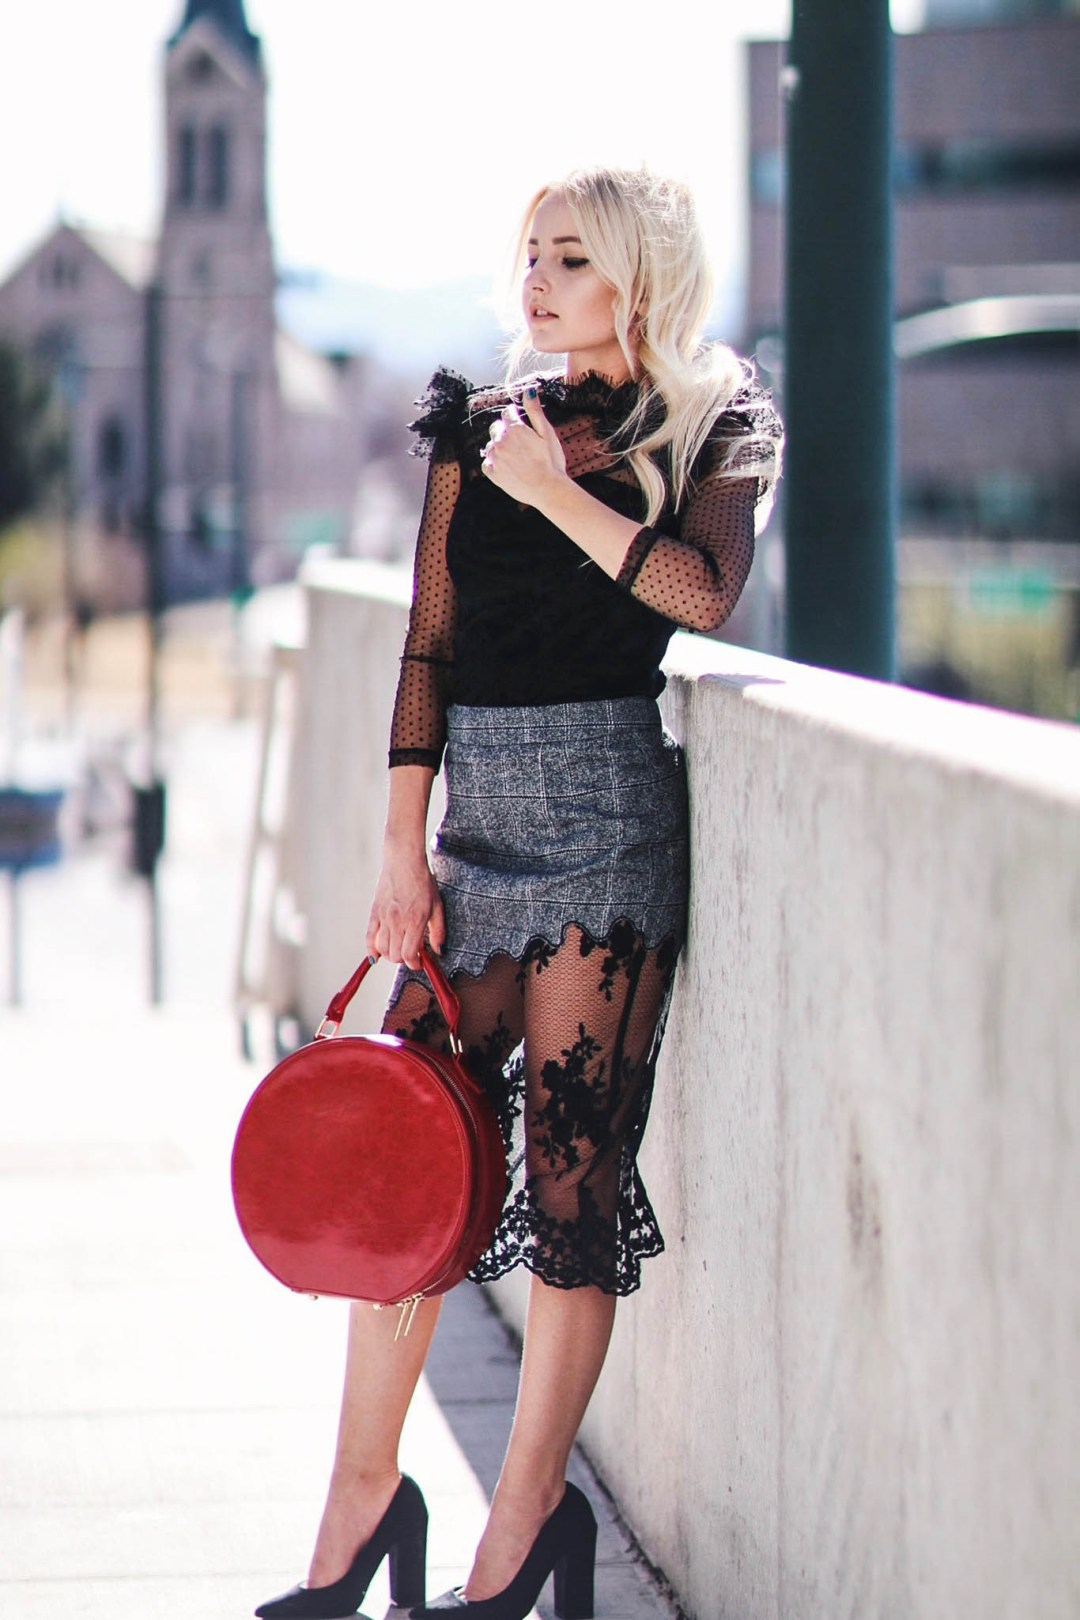 Alena Gidenko of modaprints.com styling a black sheer top with a grey pencil skirt